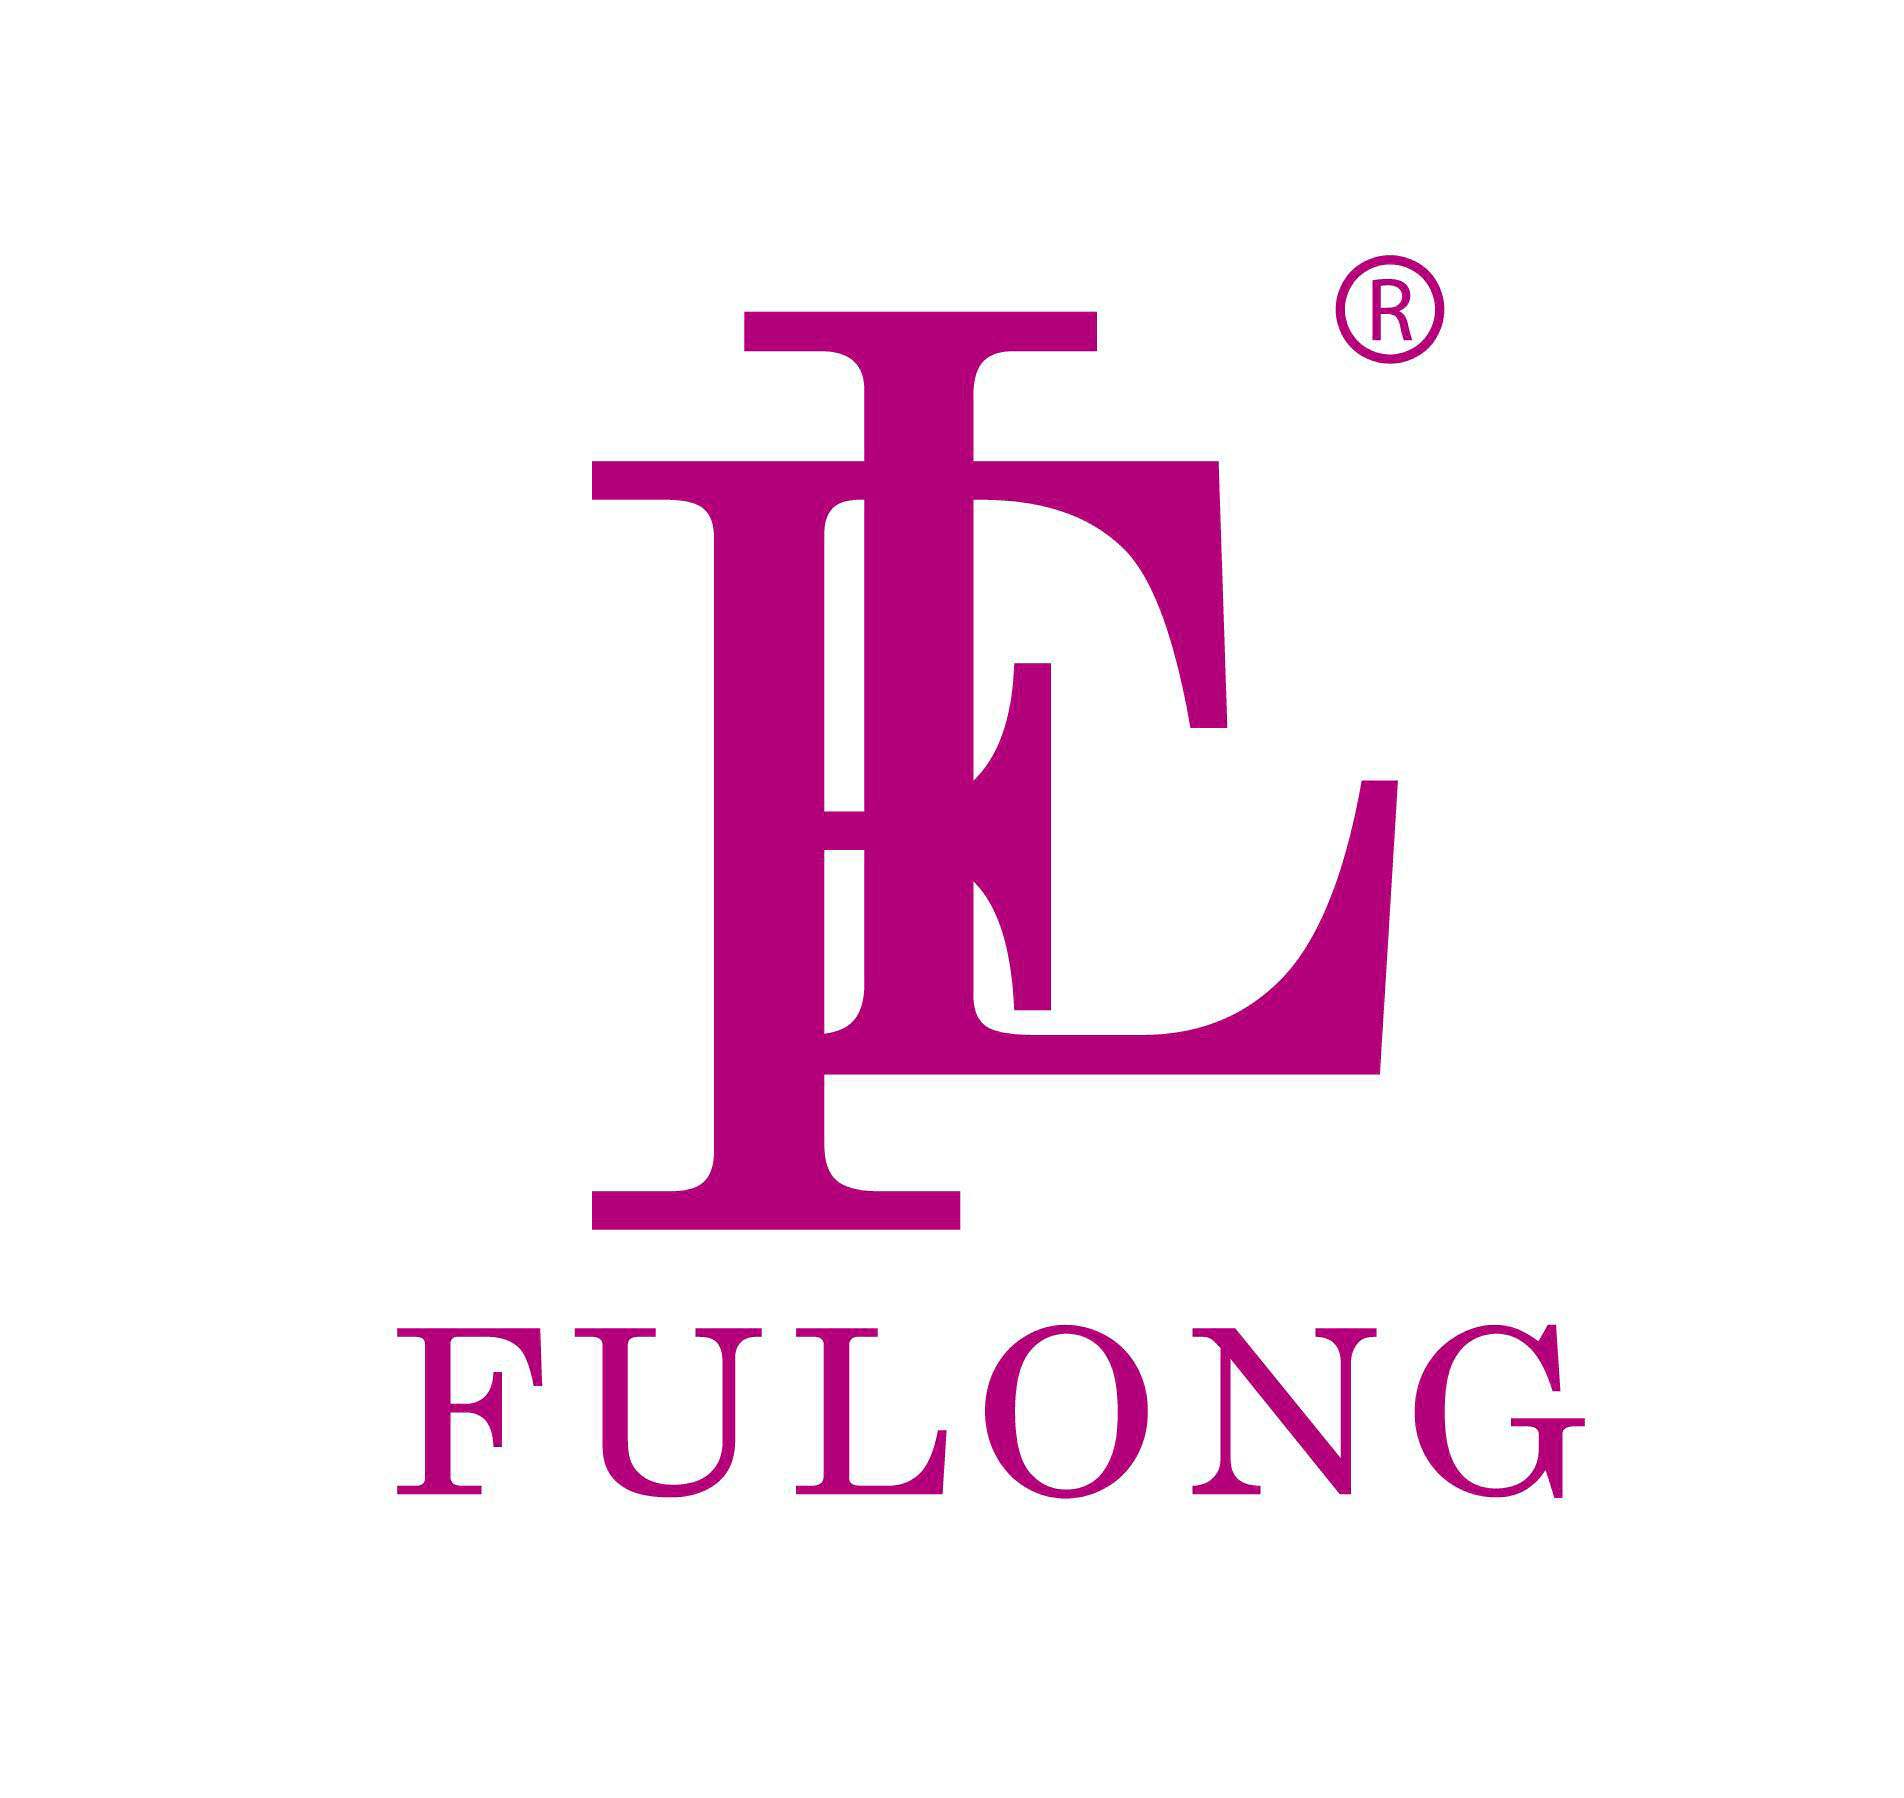 FULONG (FUJIAN) UMBRELLA CO. LTD.